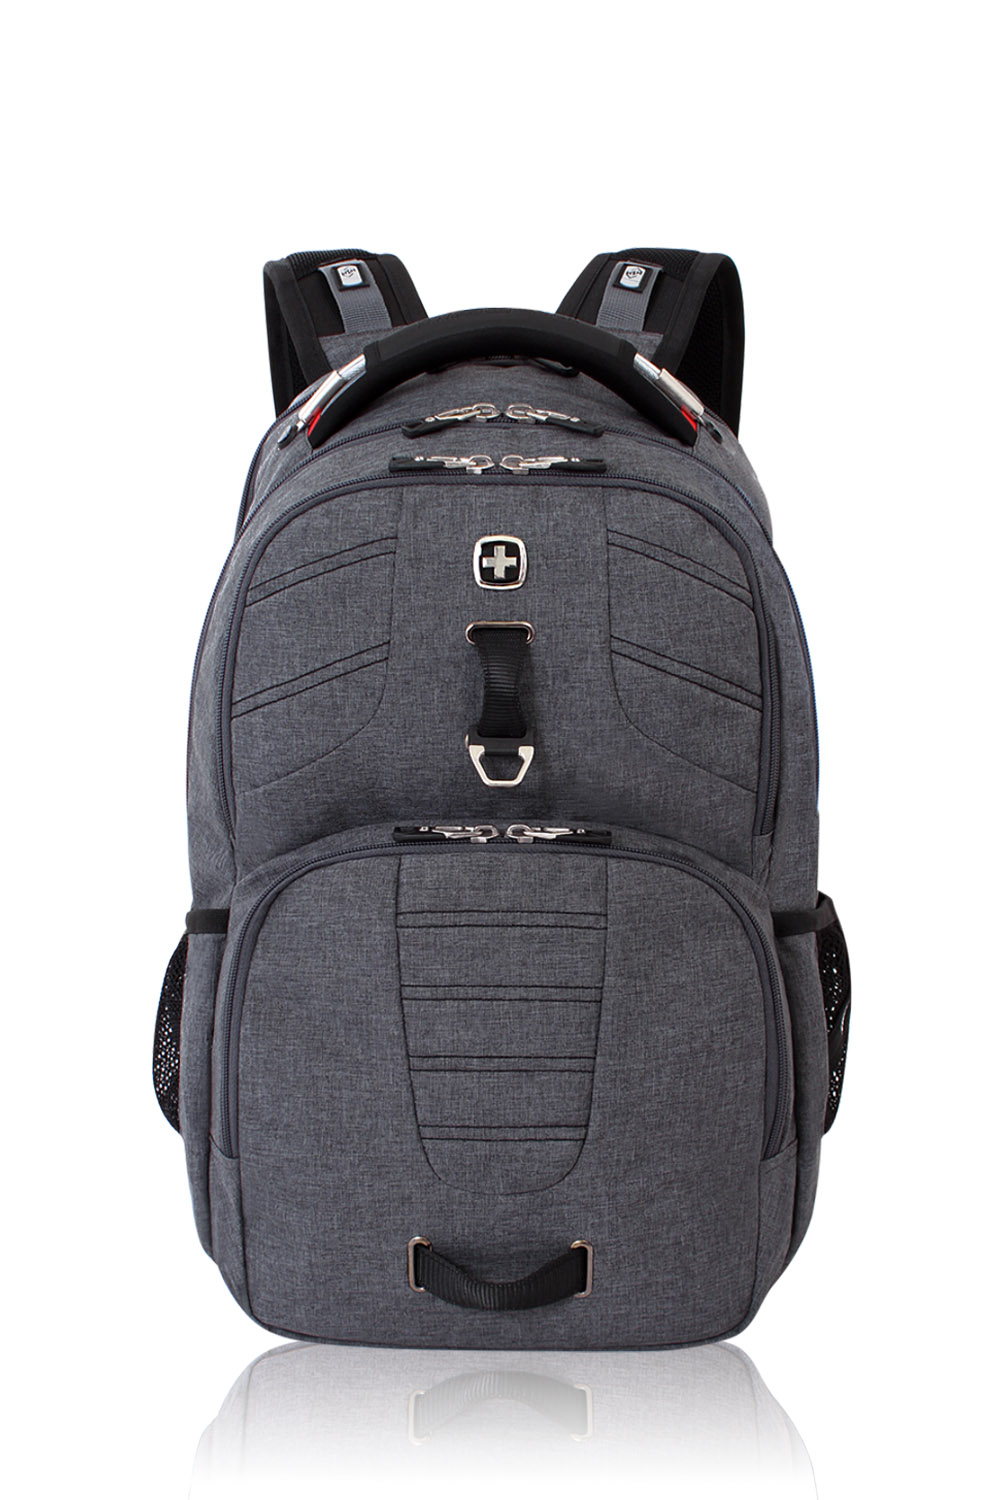 SWISSGEAR 5311 Scansmart Backpack - Heather